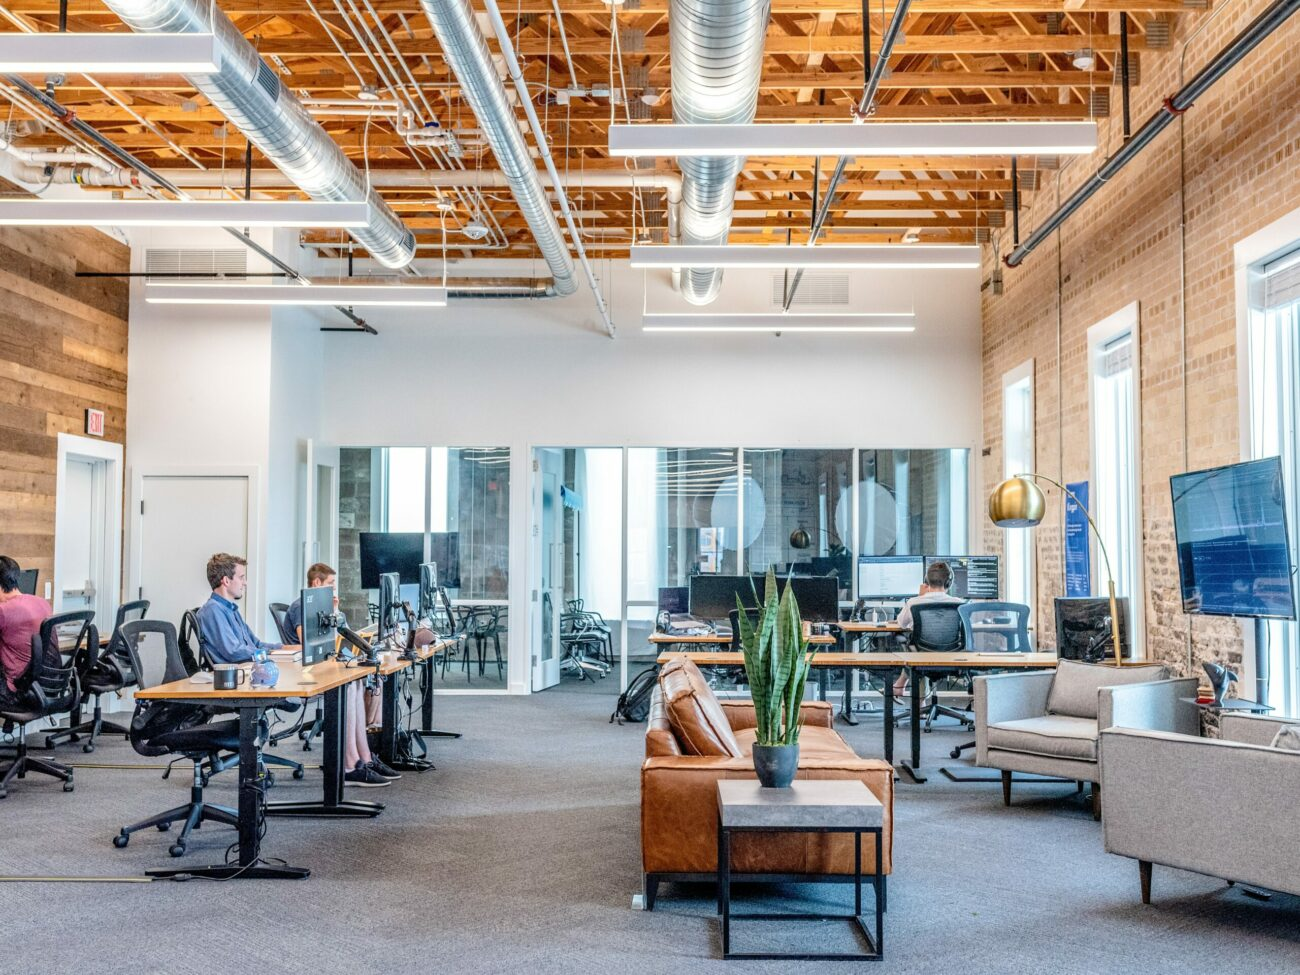 open office spaced filled with people working at their latops